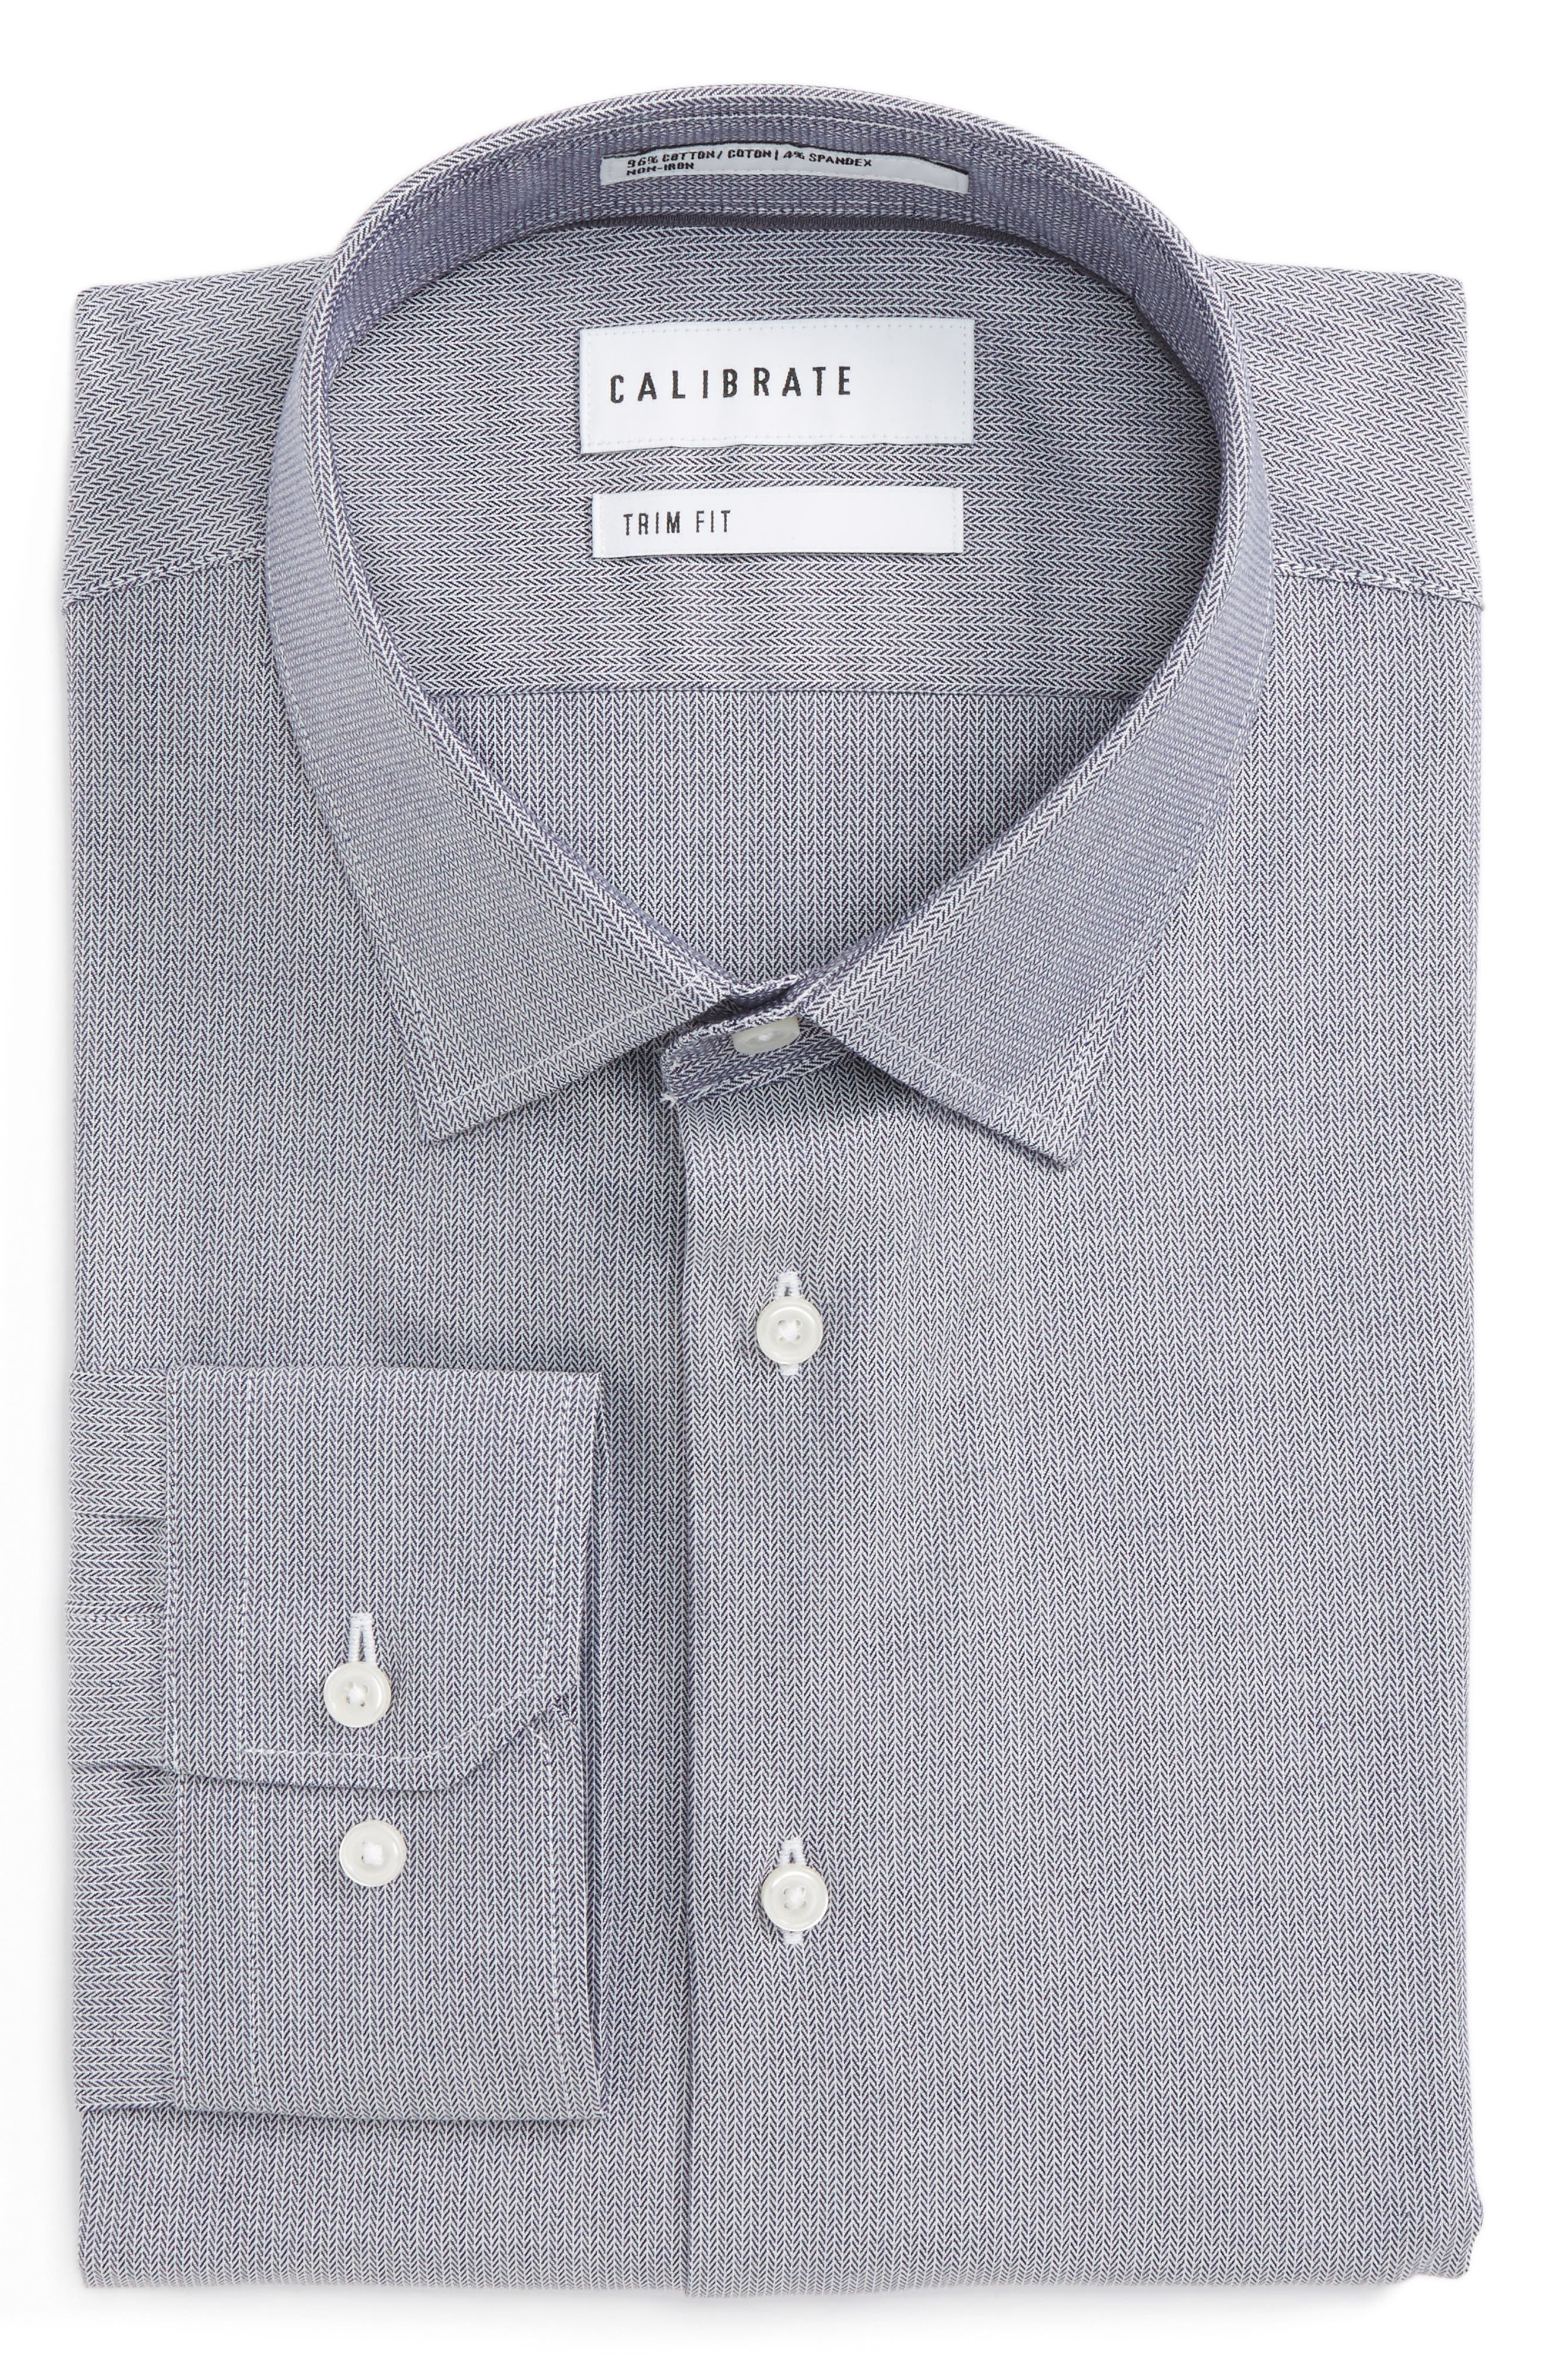 Calibrate Trim Fit No-Iron Stretch Cotton Dress Shirt